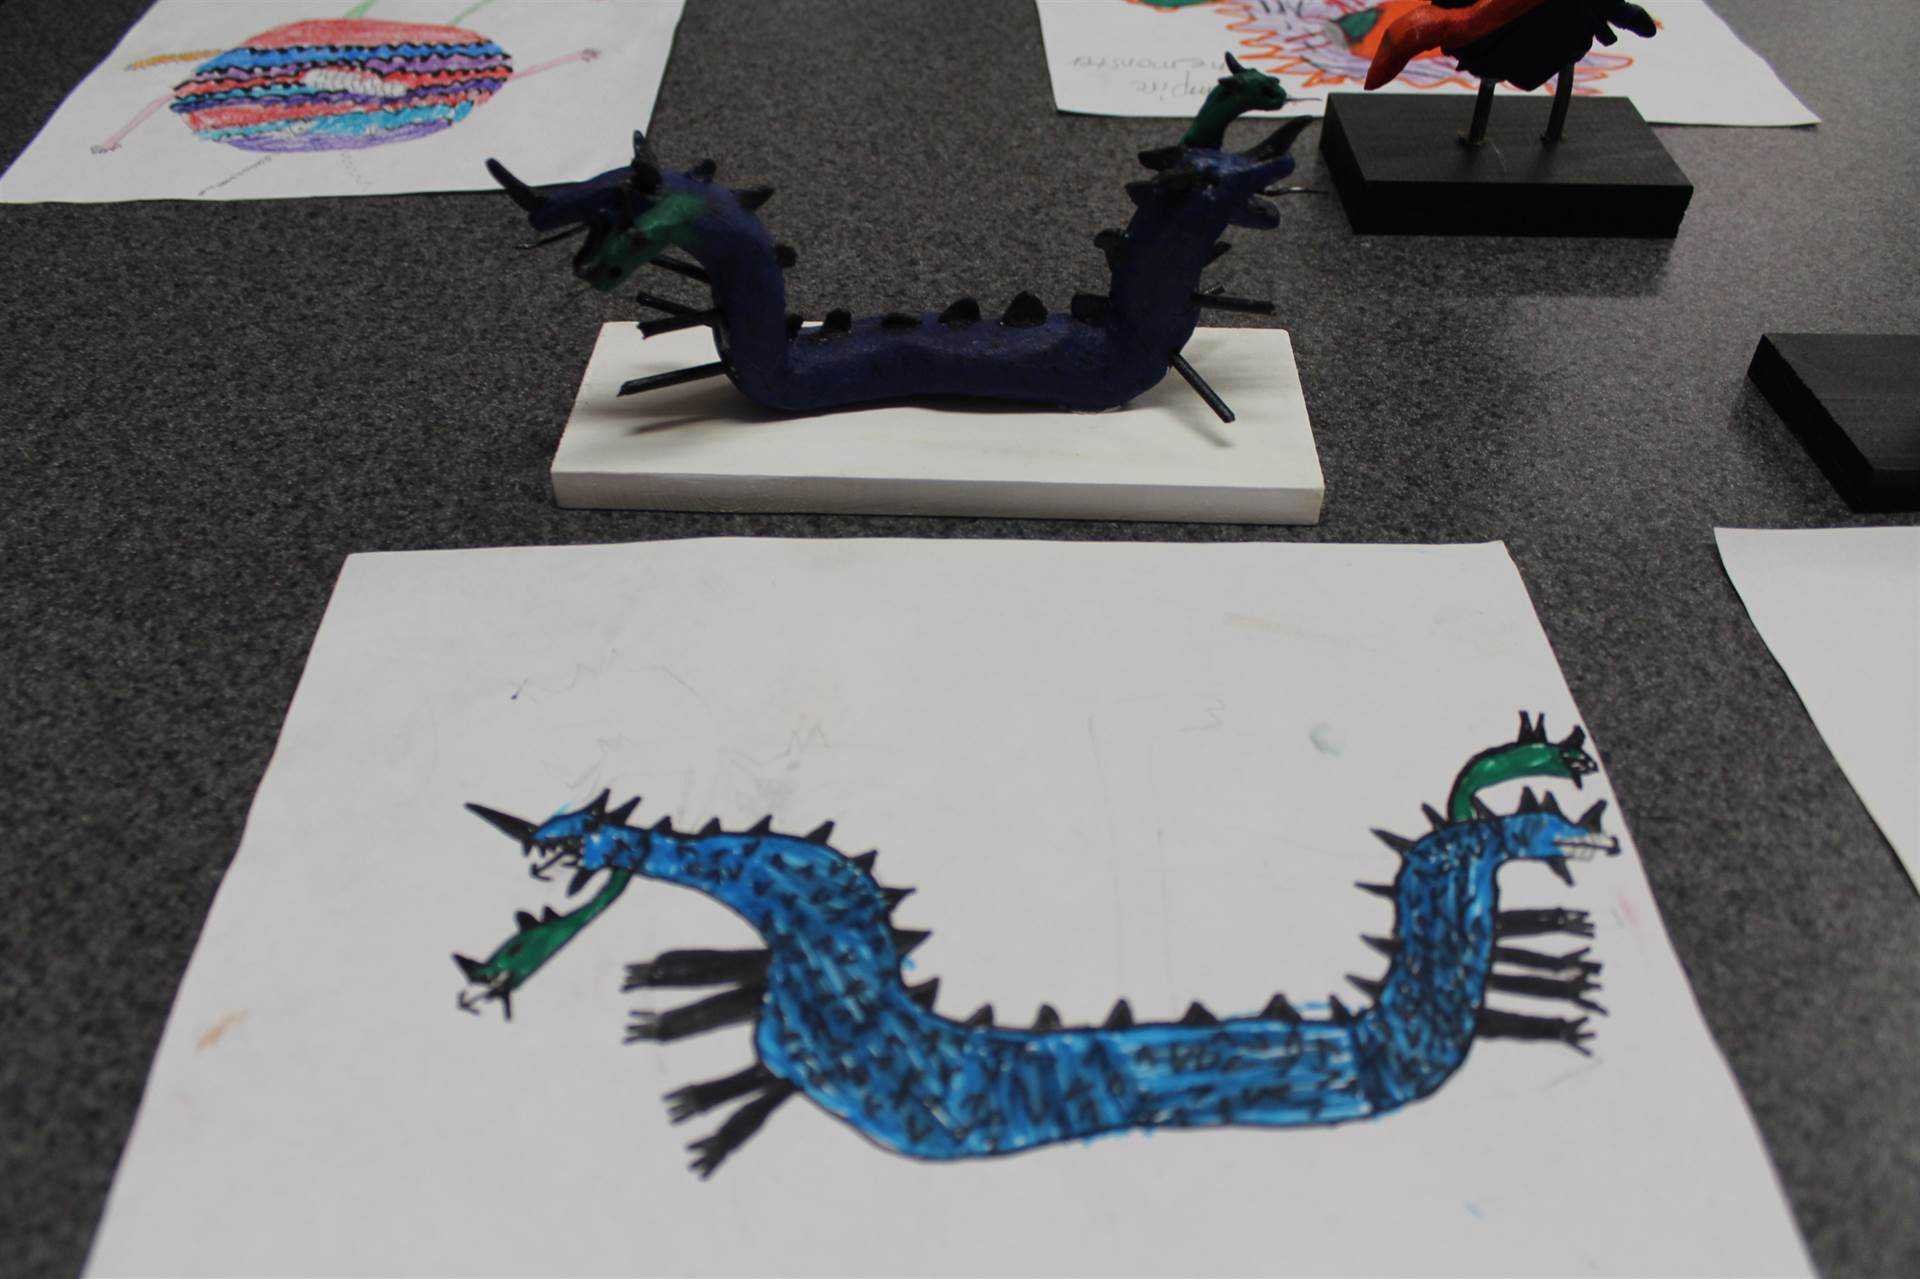 monster 3 d sculpture next to drawn picture 125